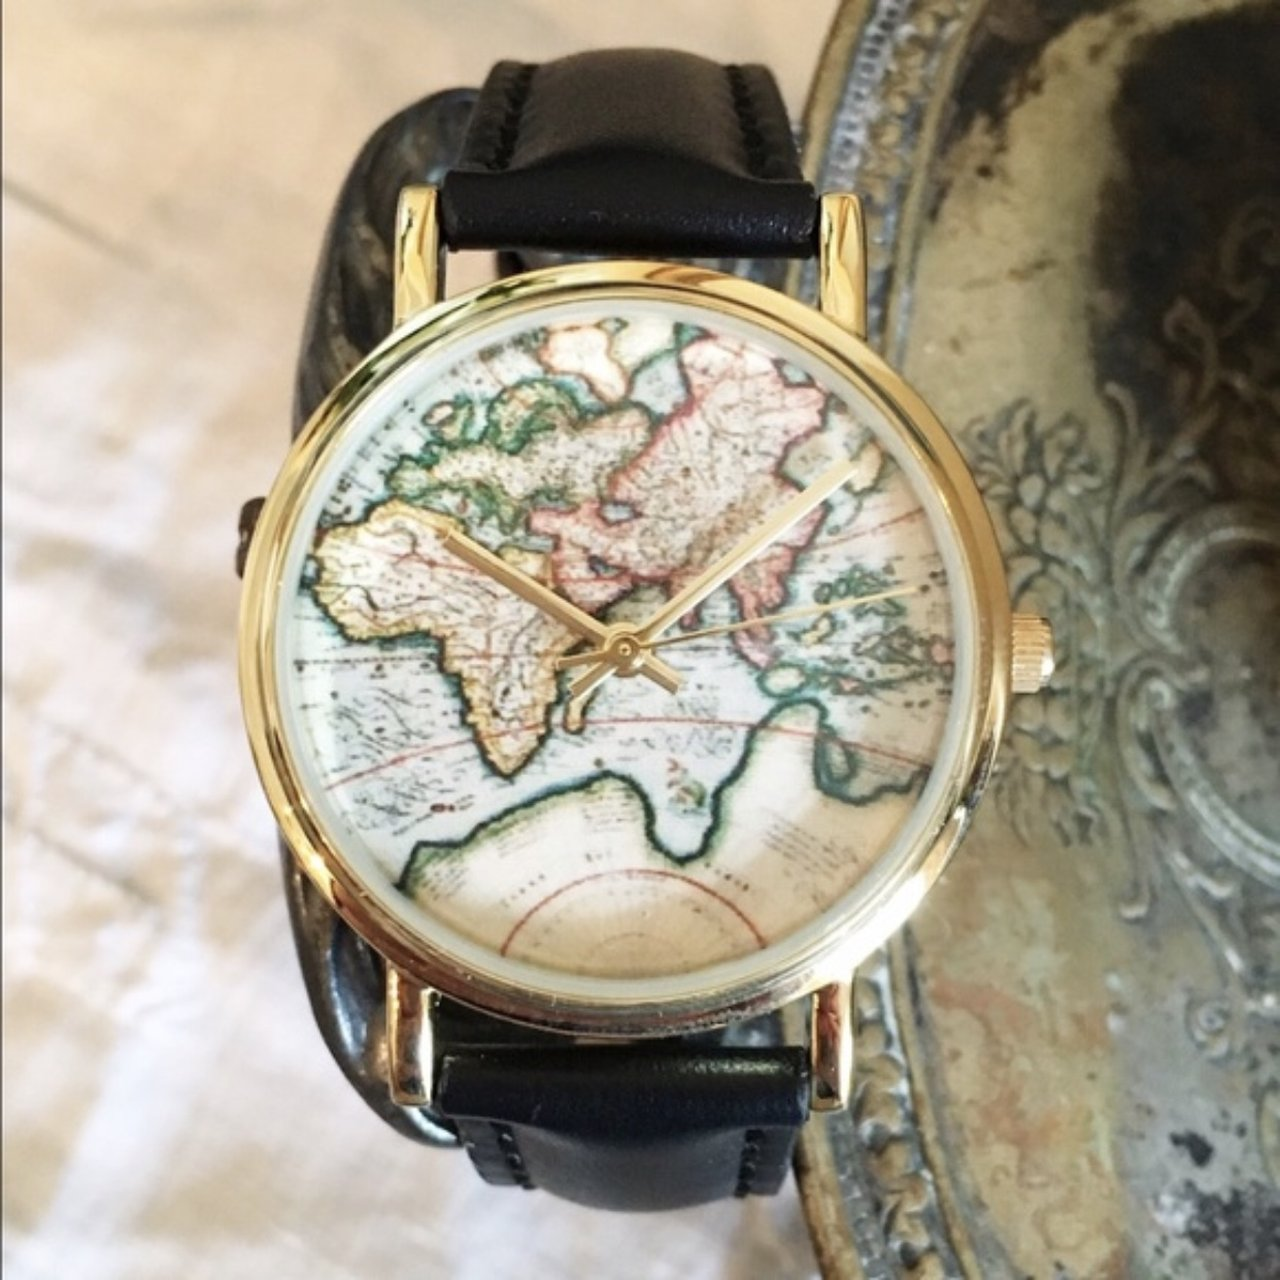 Urban Outfitters World Map Watch.Urban Outfitters World Map Watch Wore It Once Or Twice Depop